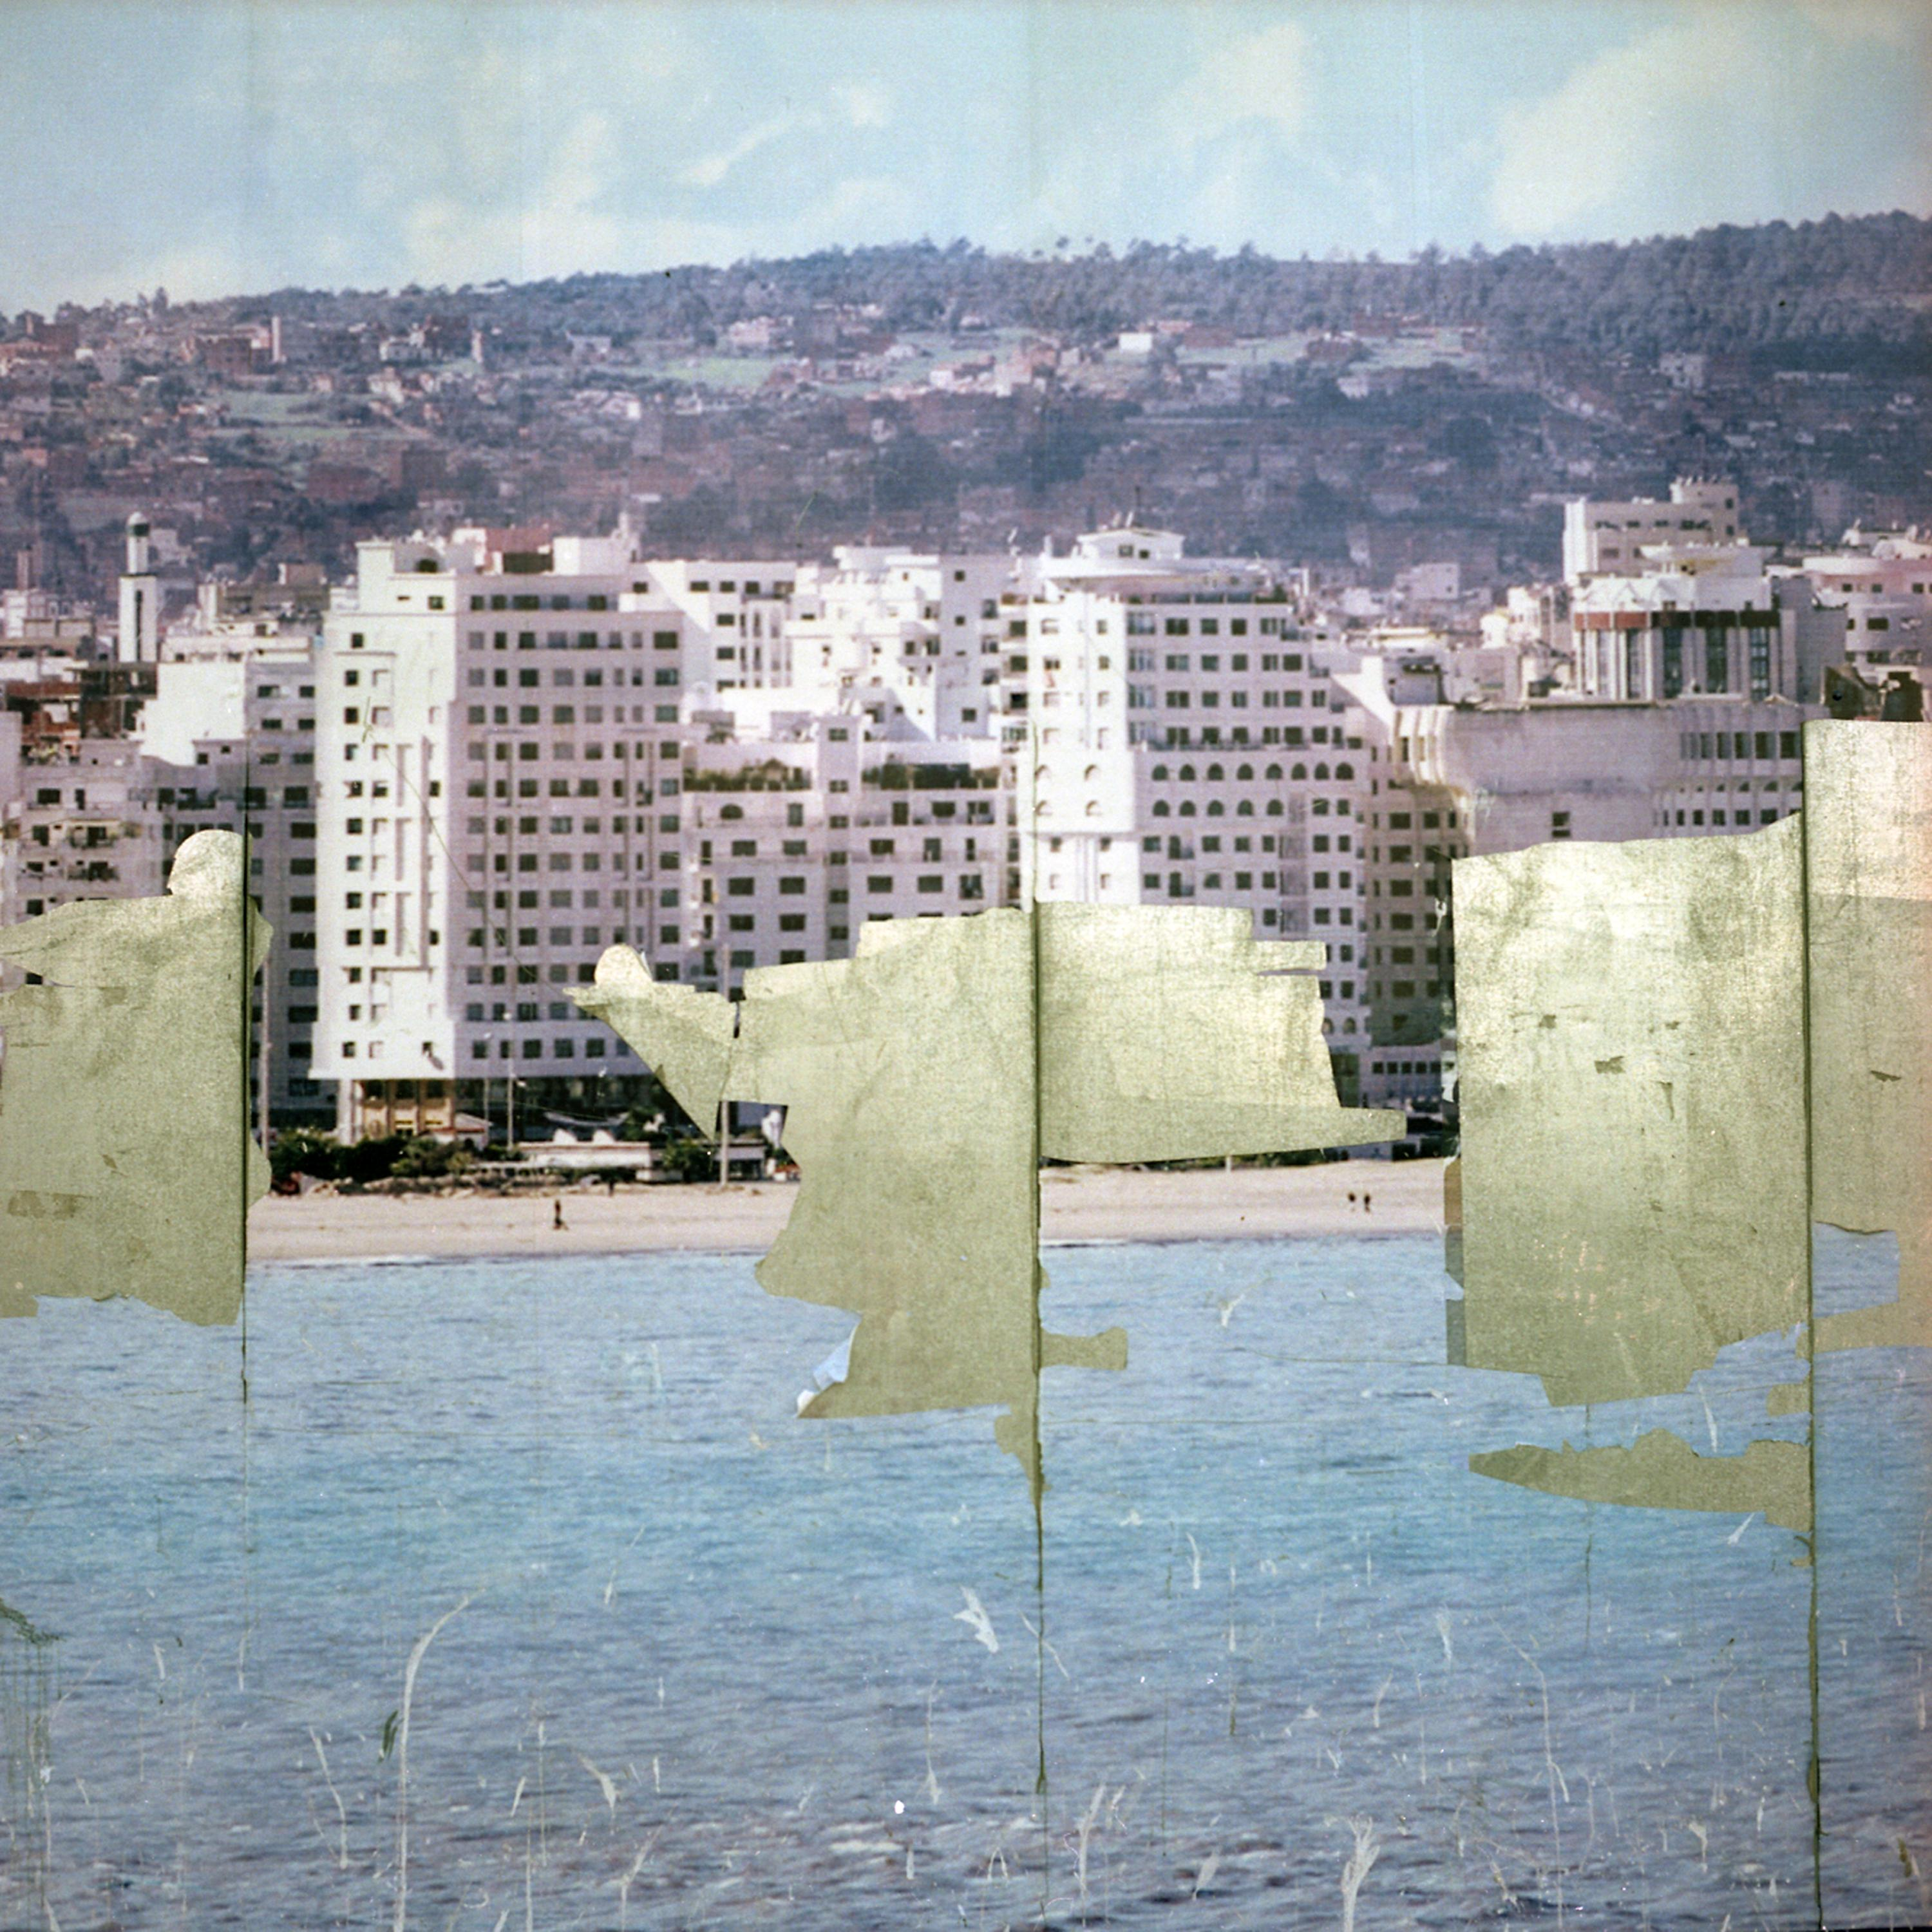 What appears to be a faded, scratched poster displaying tall waterfront residential buildings is missing large sections, as if it peeled off of a wall.